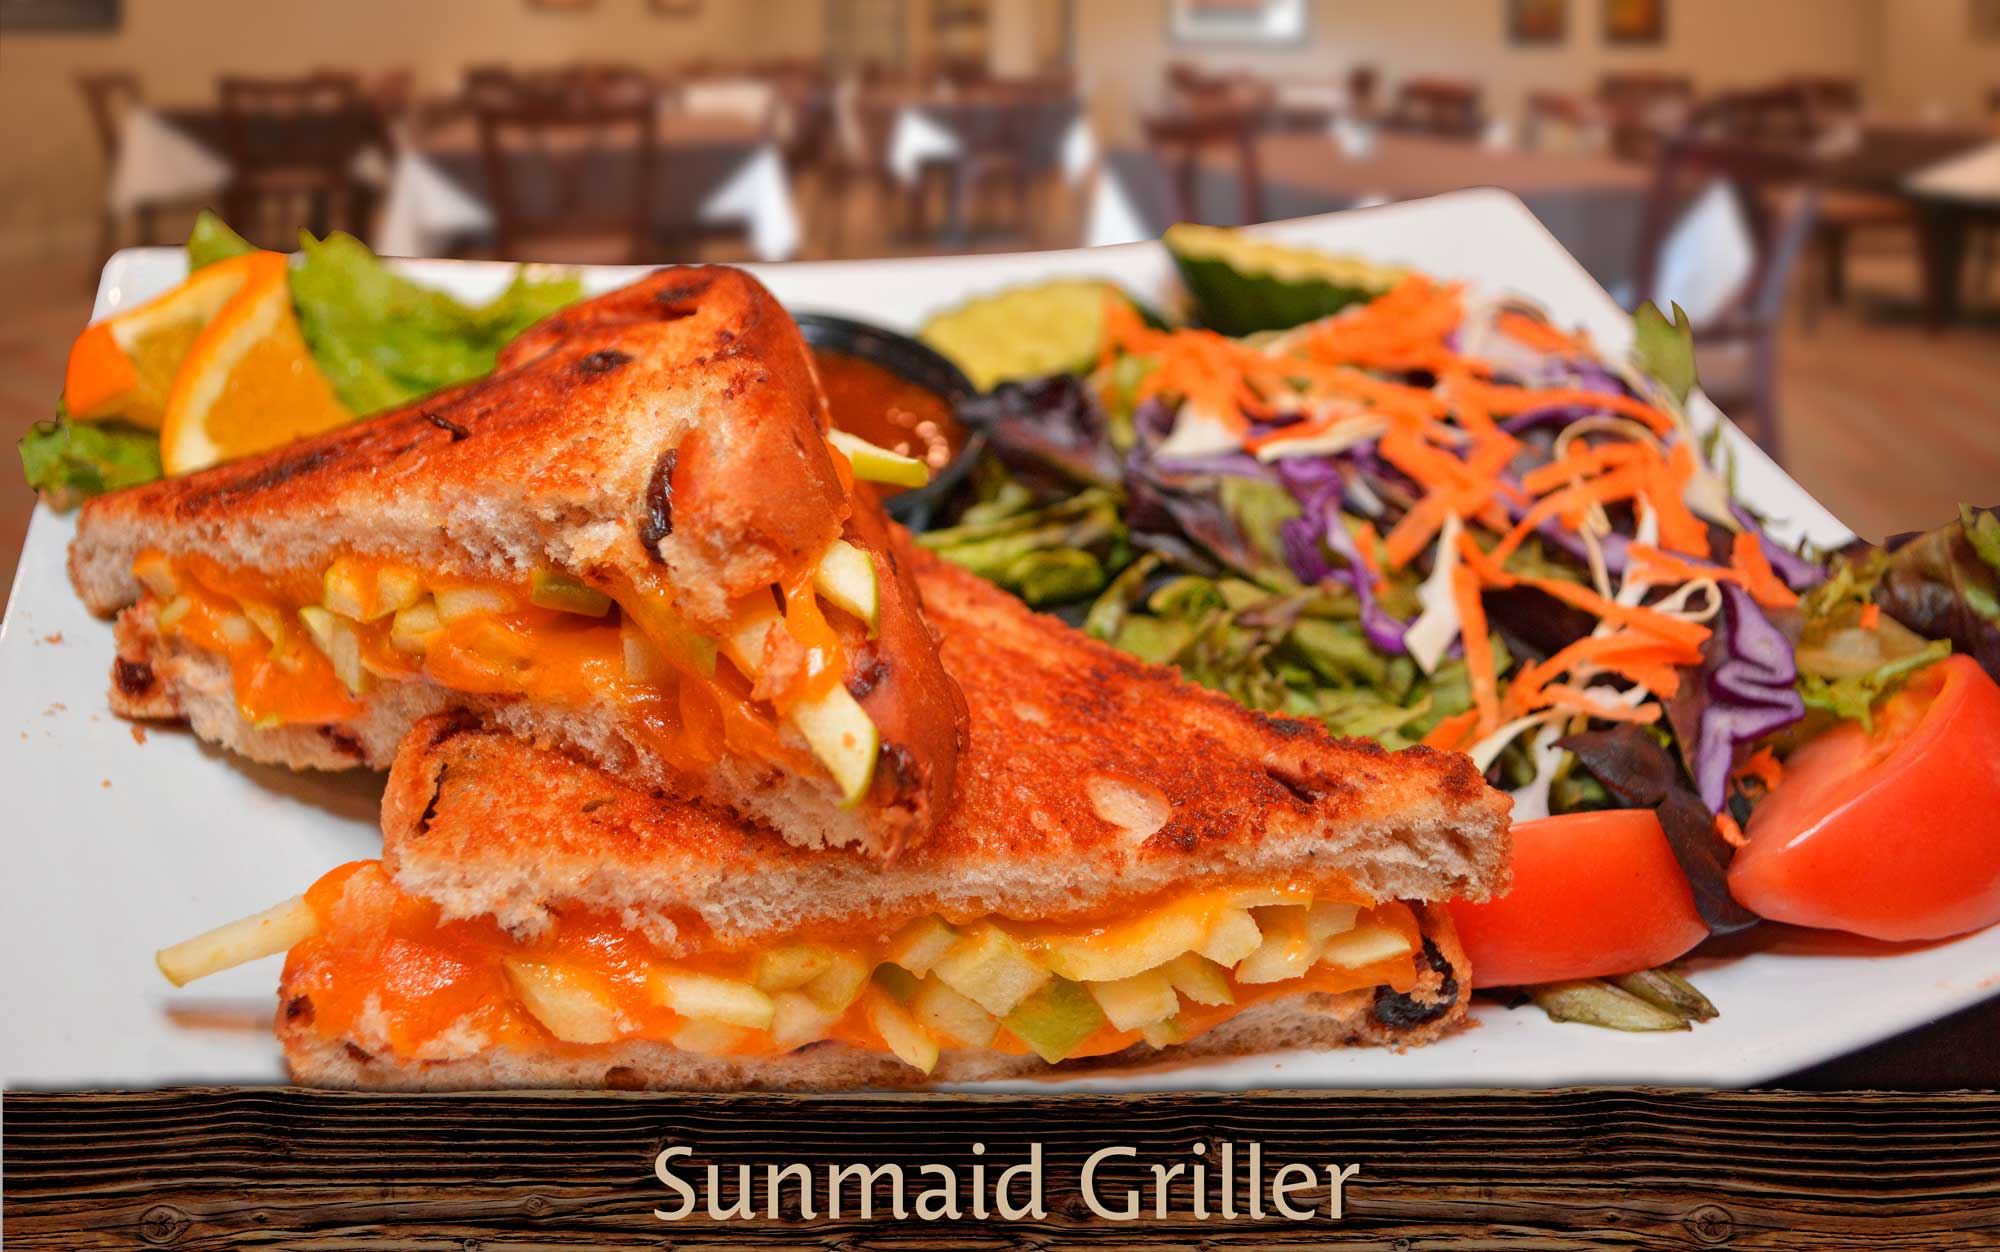 Sunmaid Griller